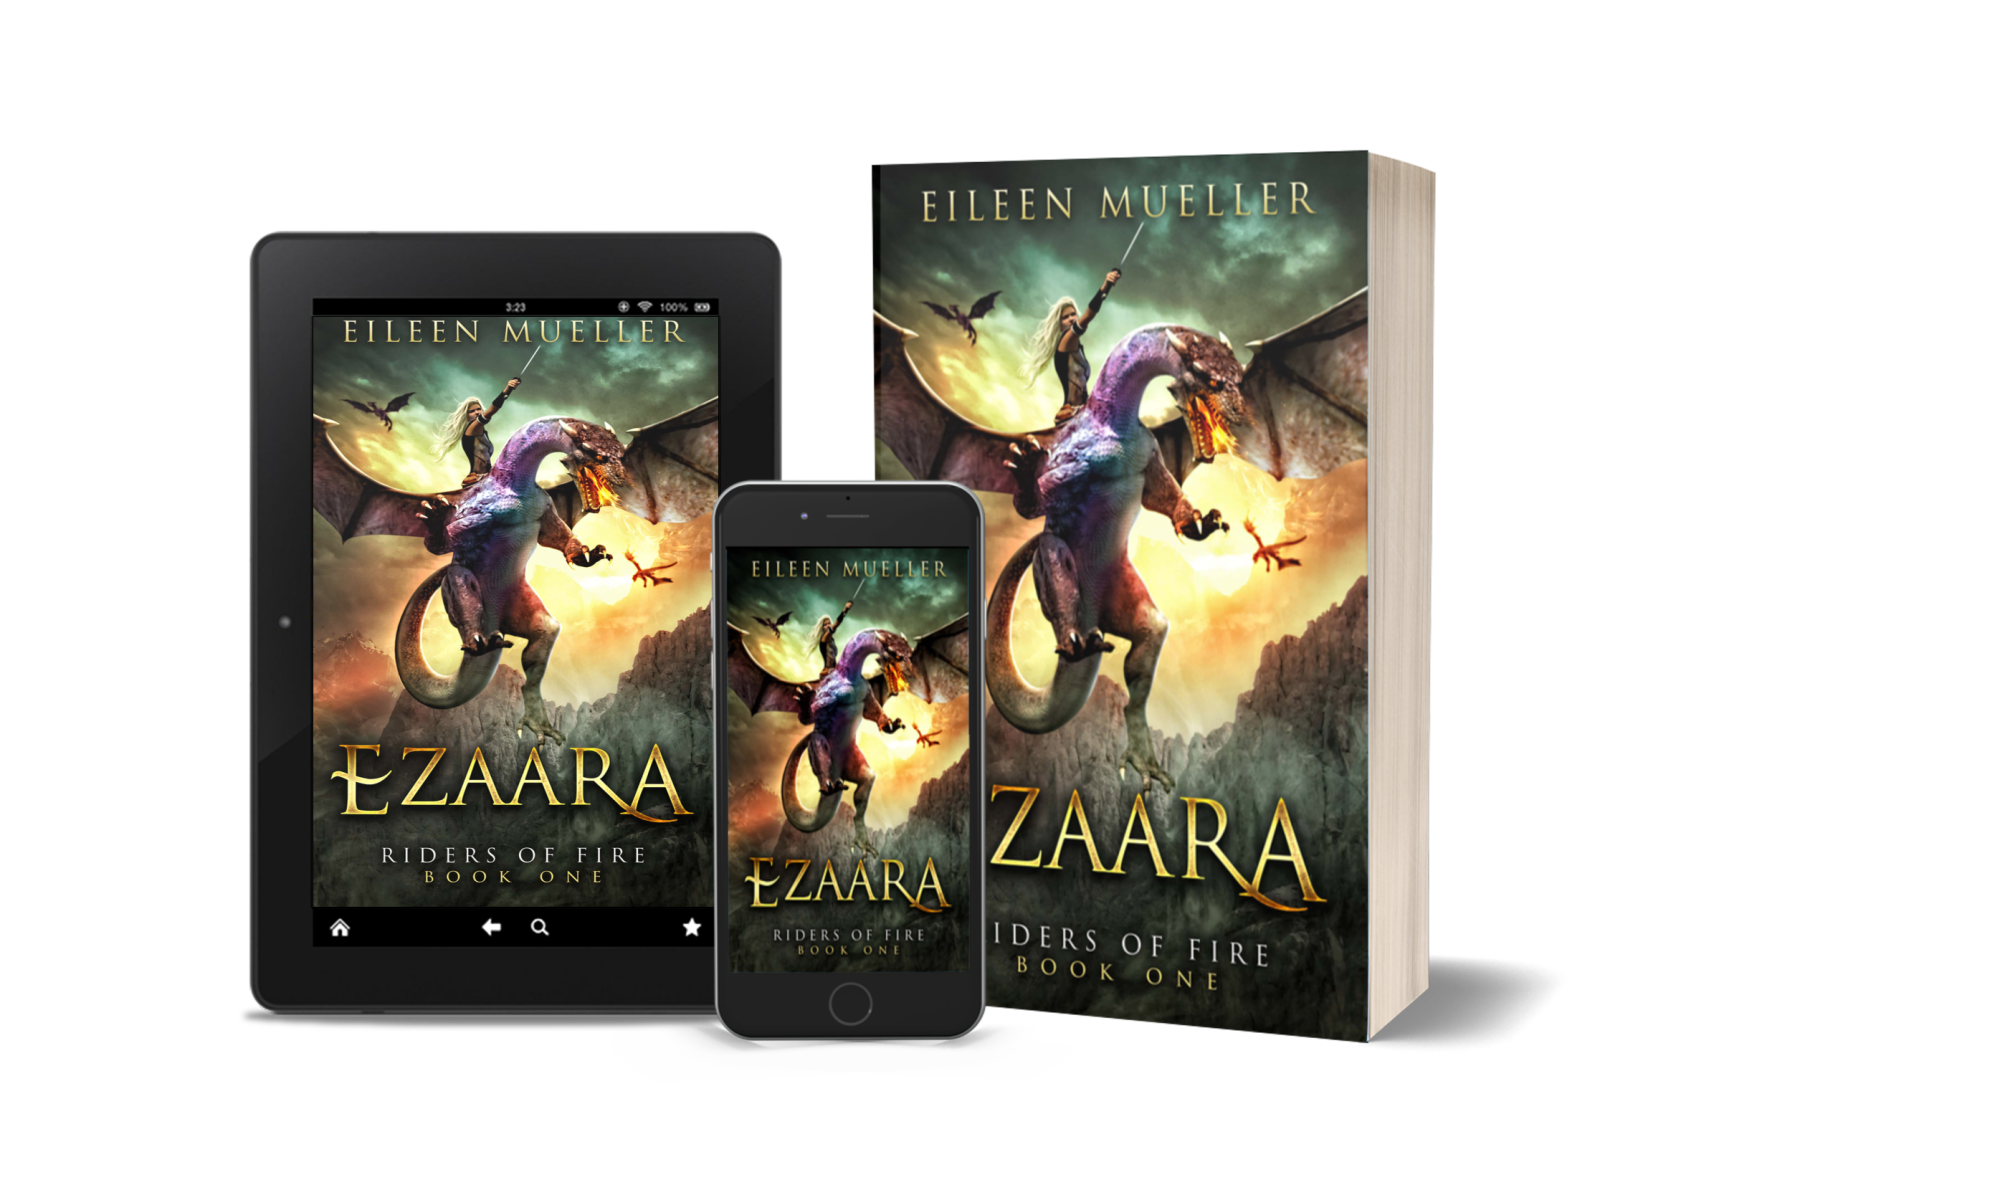 Ezaara, Riders of Fire, book 1 - YA dragon rider adventure